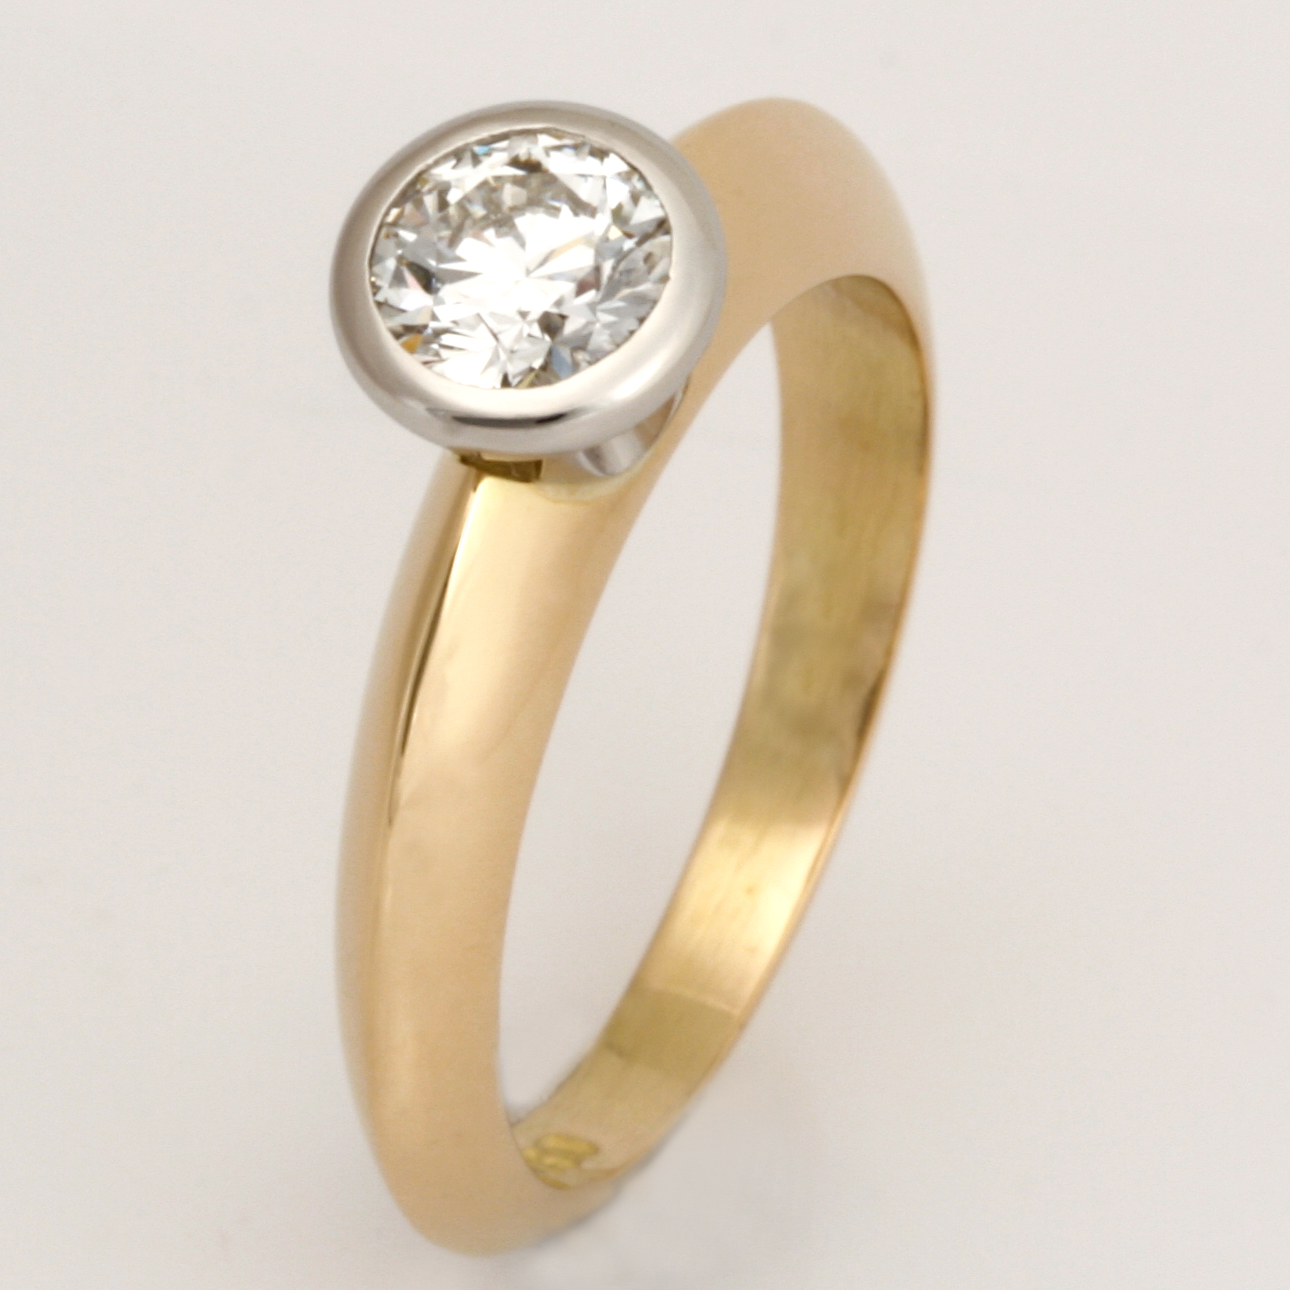 Handmade ladies 18ct yellow gold and platinum diamond engagement ring.